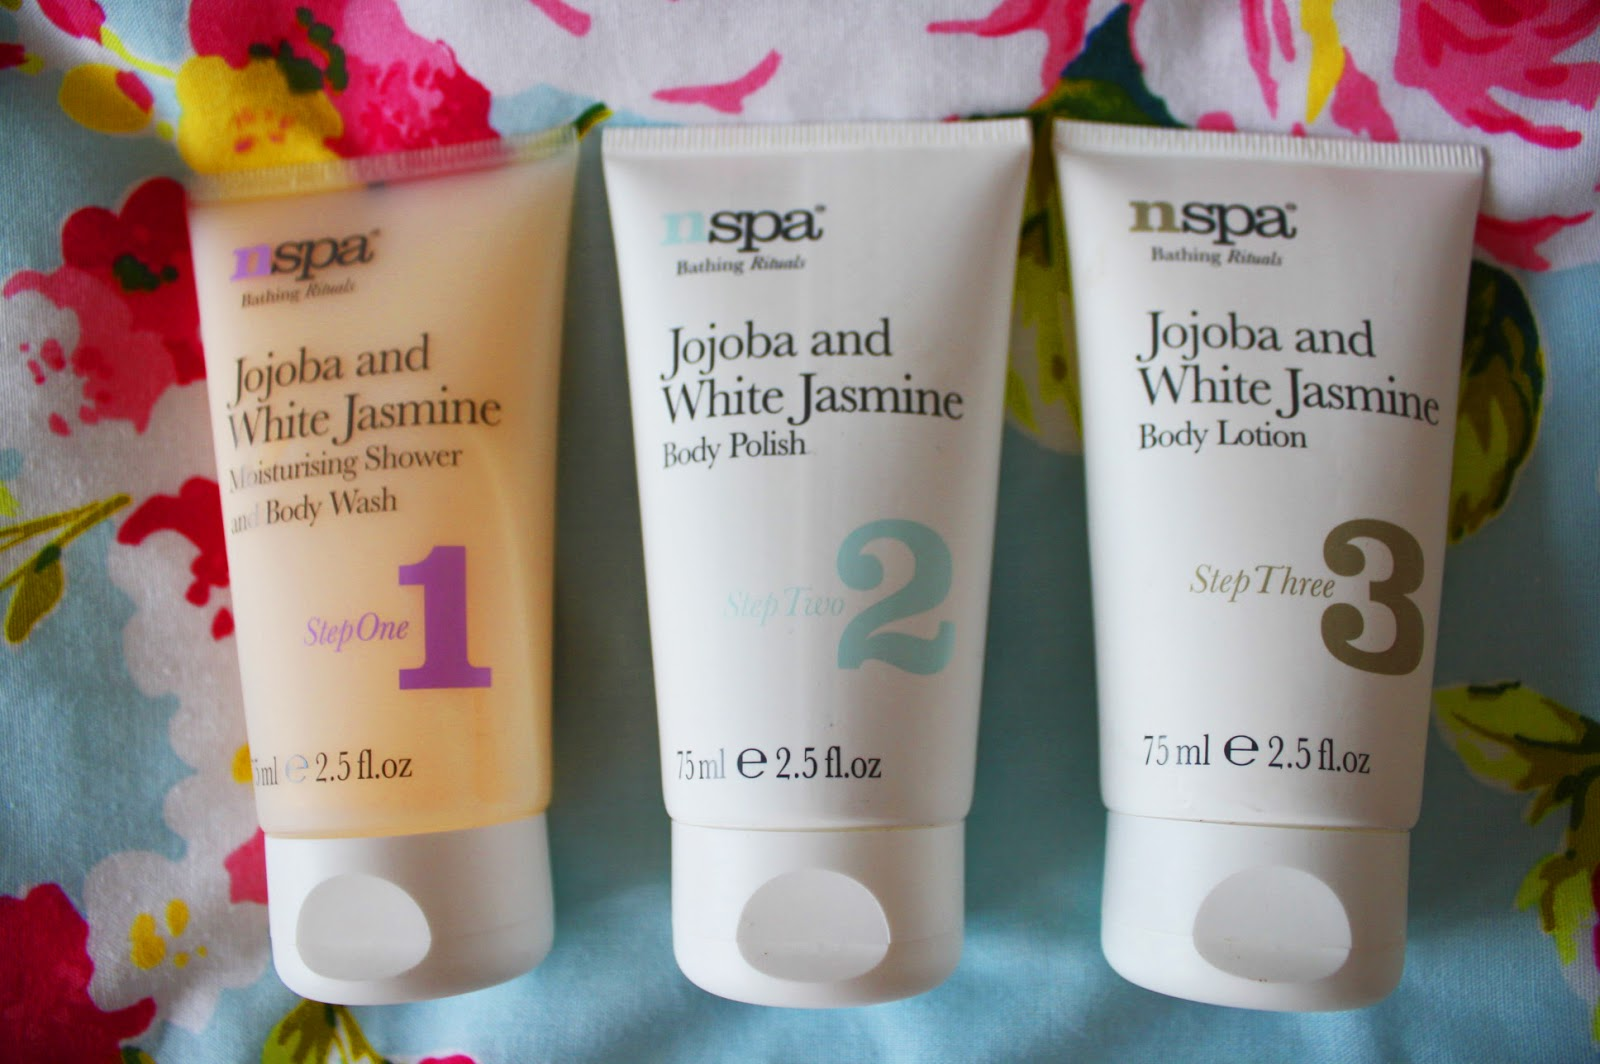 Shower products from the NSPA collection